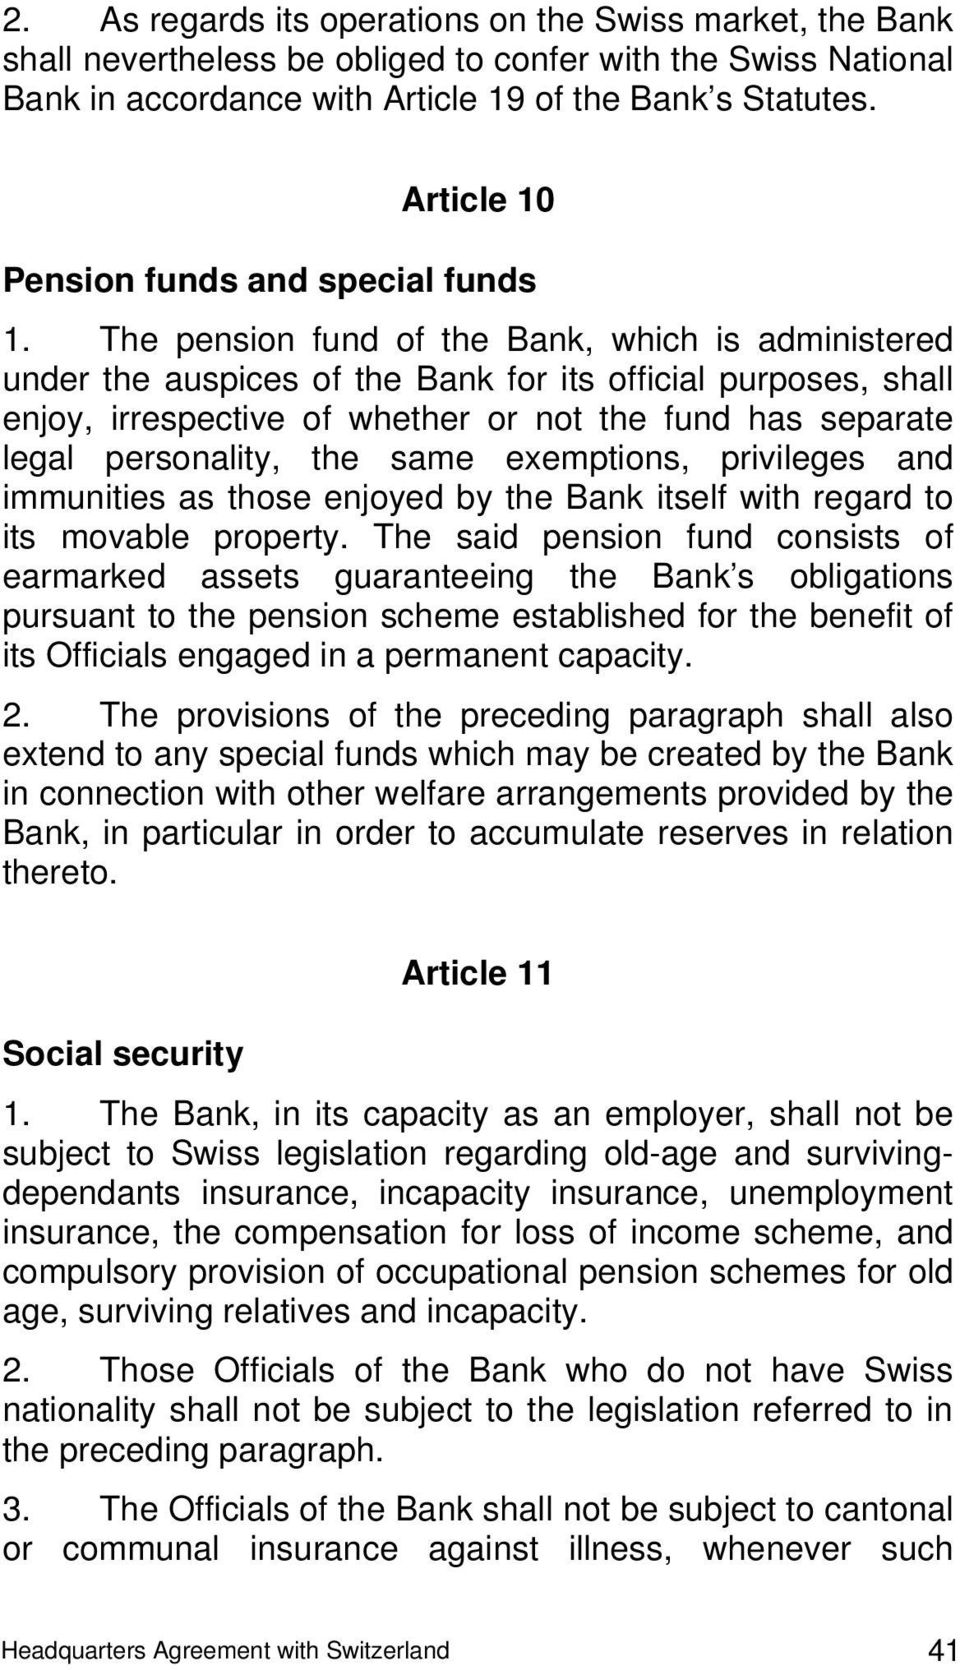 The pension fund of the Bank, which is administered under the auspices of the Bank for its official purposes, shall enjoy, irrespective of whether or not the fund has separate legal personality, the